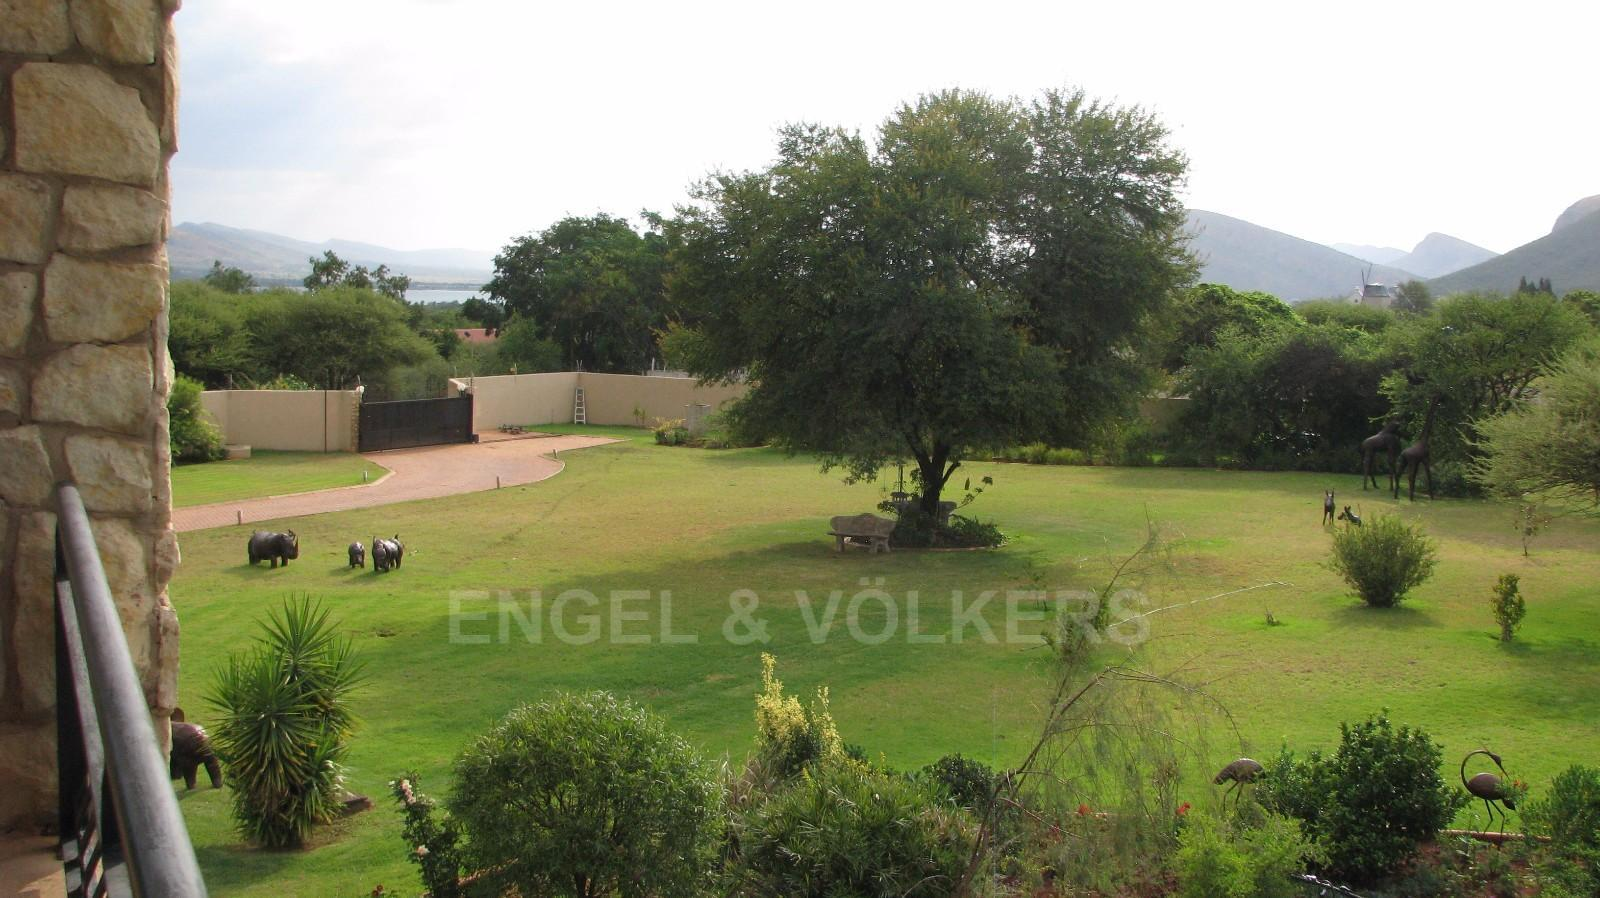 House in Melodie A/h - Stunning views from the top floor onto the dam, mountains and stunning garden